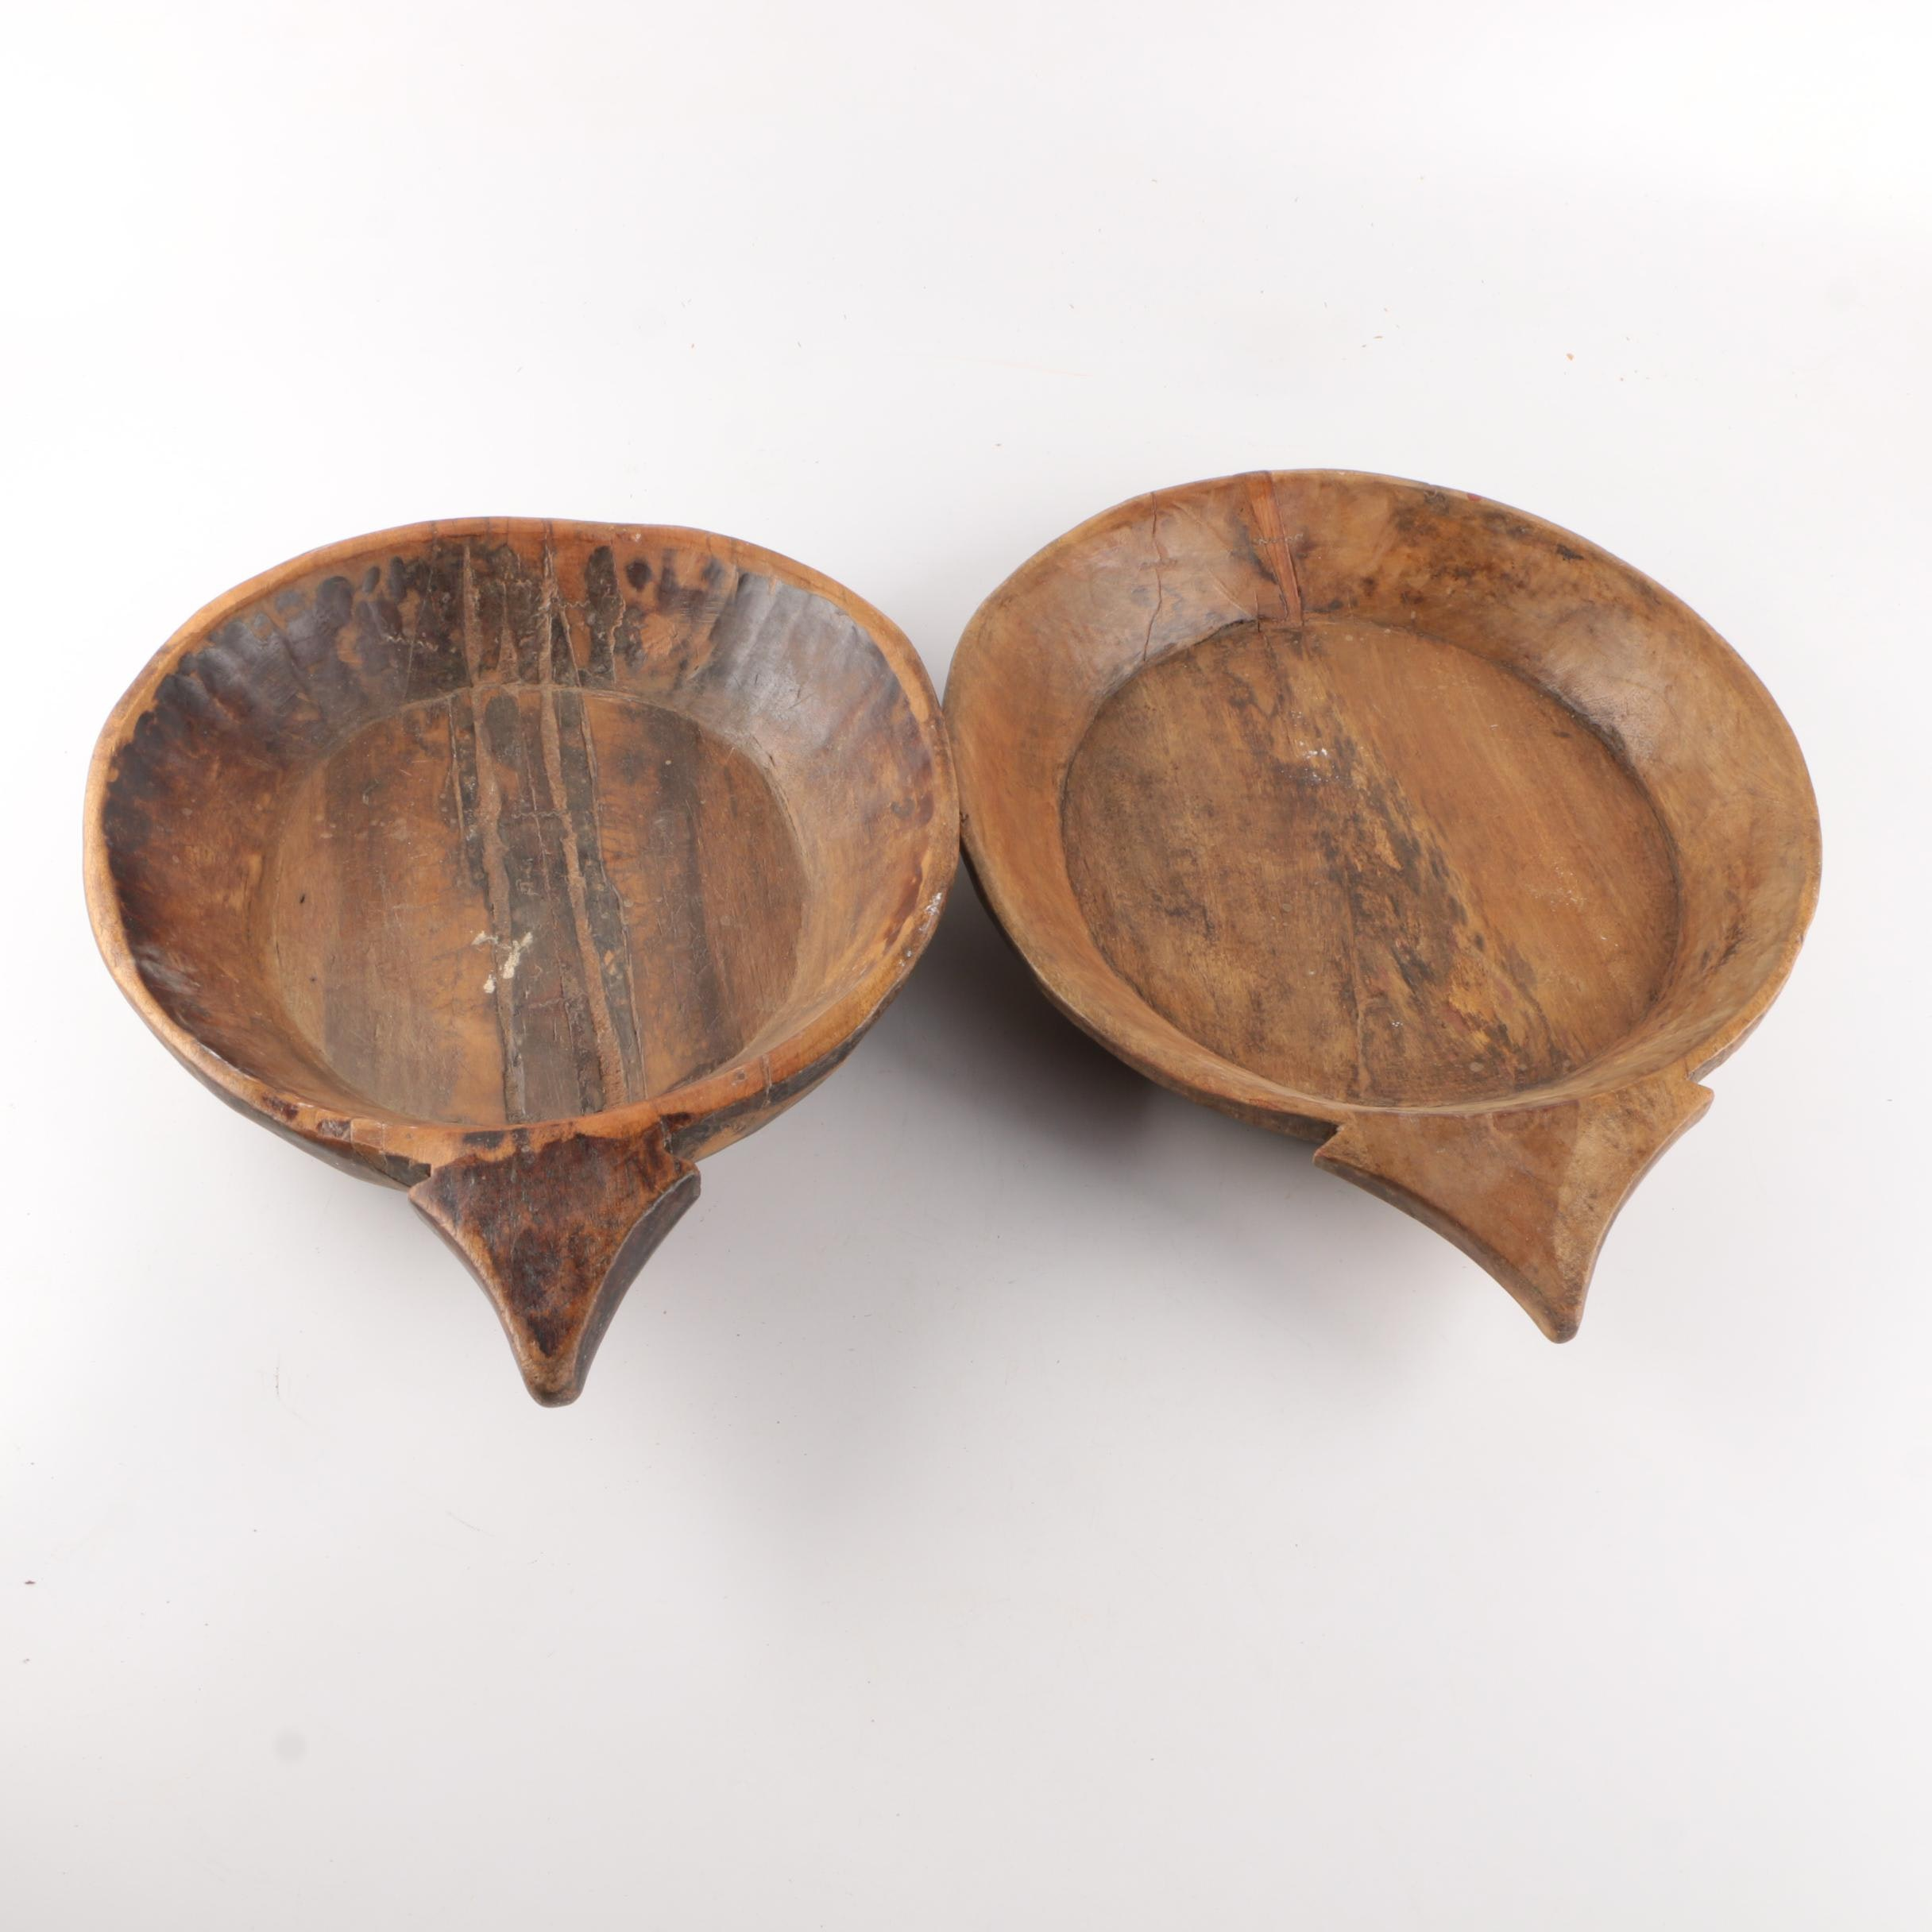 Pair of Hand Hewn  Wooden Bowls